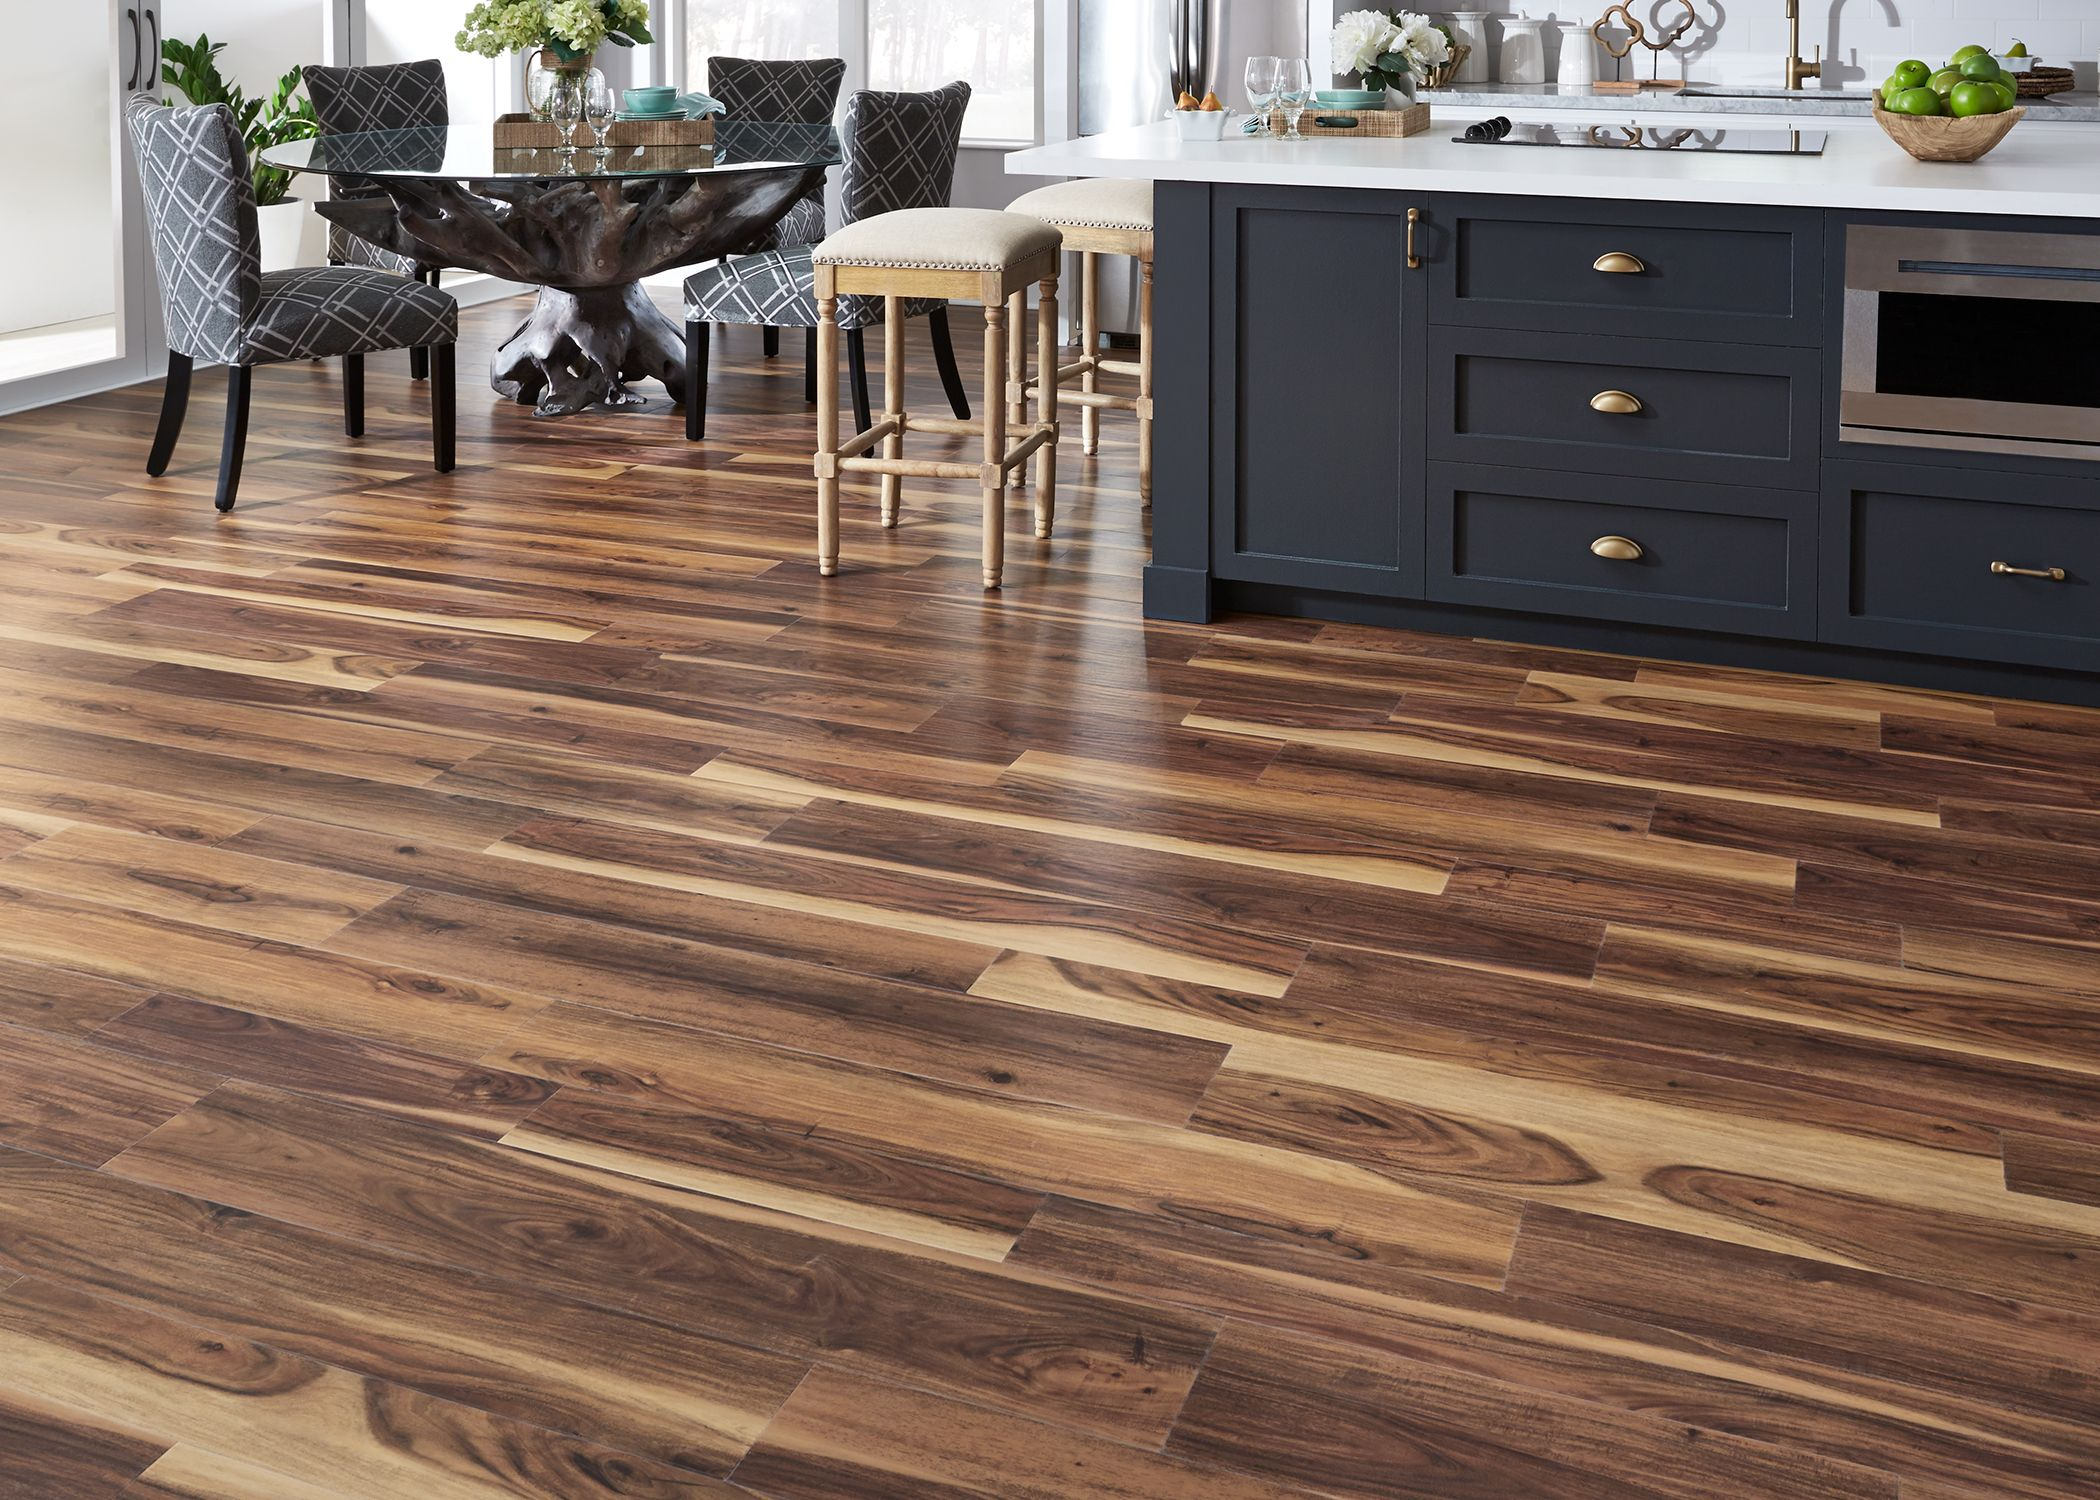 Coreluxe Ultra 8mm Tobacco Road Acacia Evp Acacia Wood Flooring Acacia Hardwood Flooring Engineered Vinyl Plank